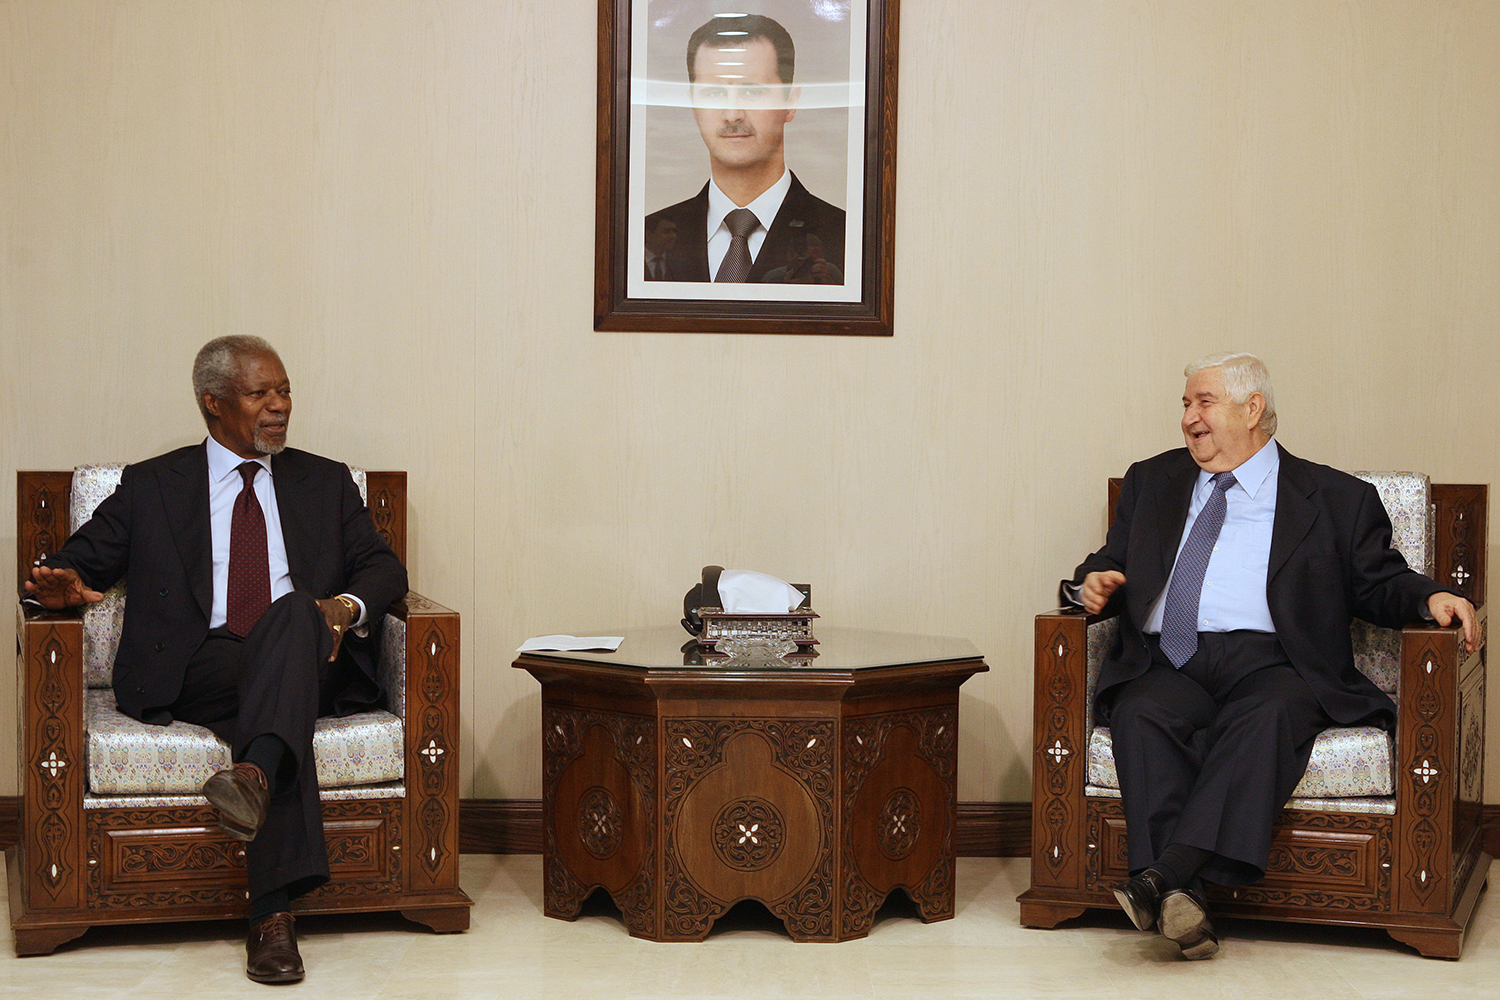 Former U.N. General-Secretary Kofi Annan meets with Syrian Foreign Minister Walid Muallem under a portrait of Syrian President Bashar al-Assad in Damascus on May 28, 2012.